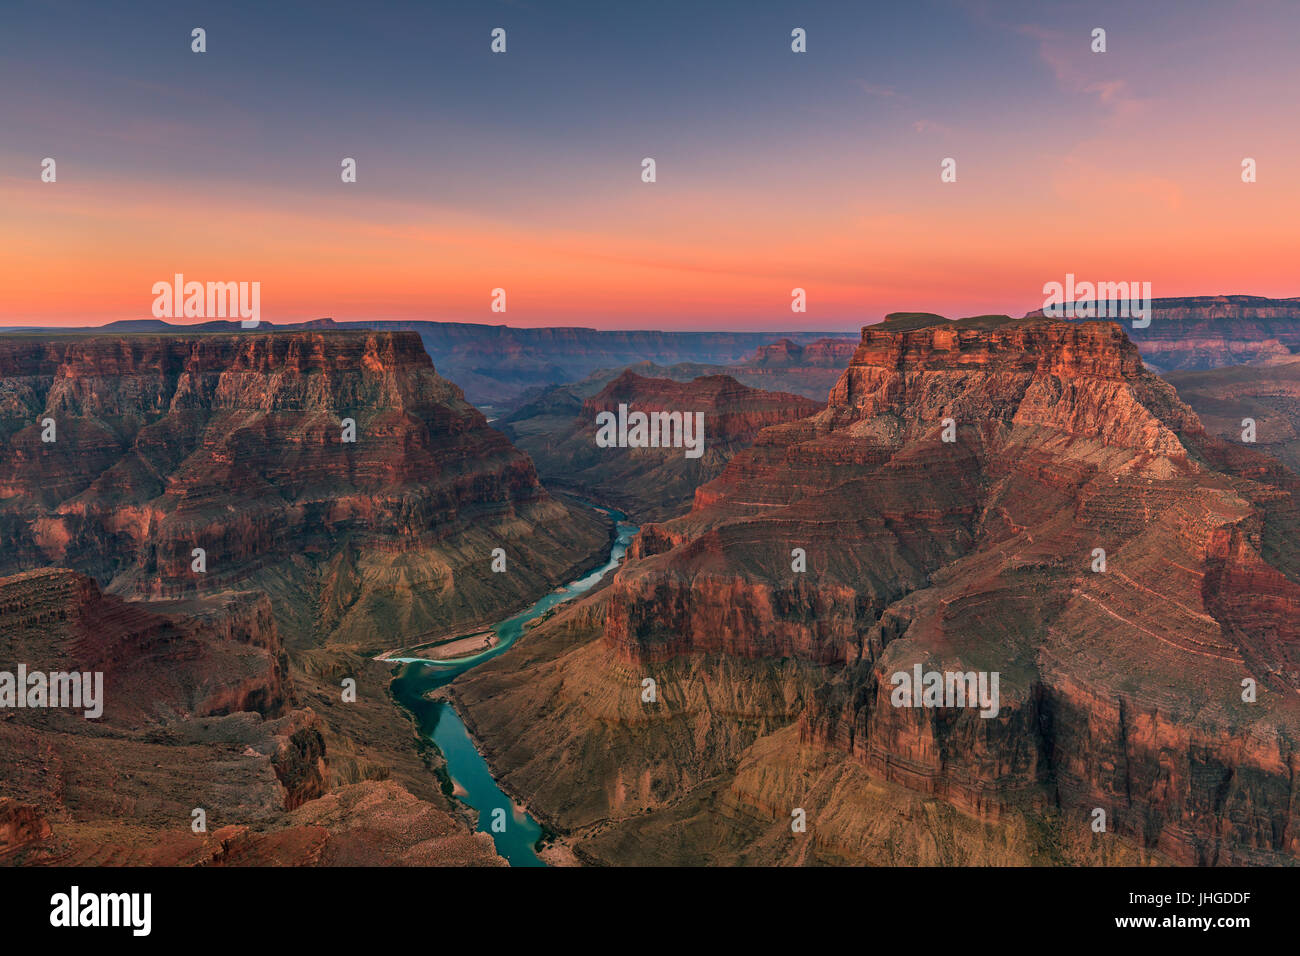 Confluence of the Main and Little Colorado rivers, Grand Canyon National Park, Arizona, USA Stock Photo